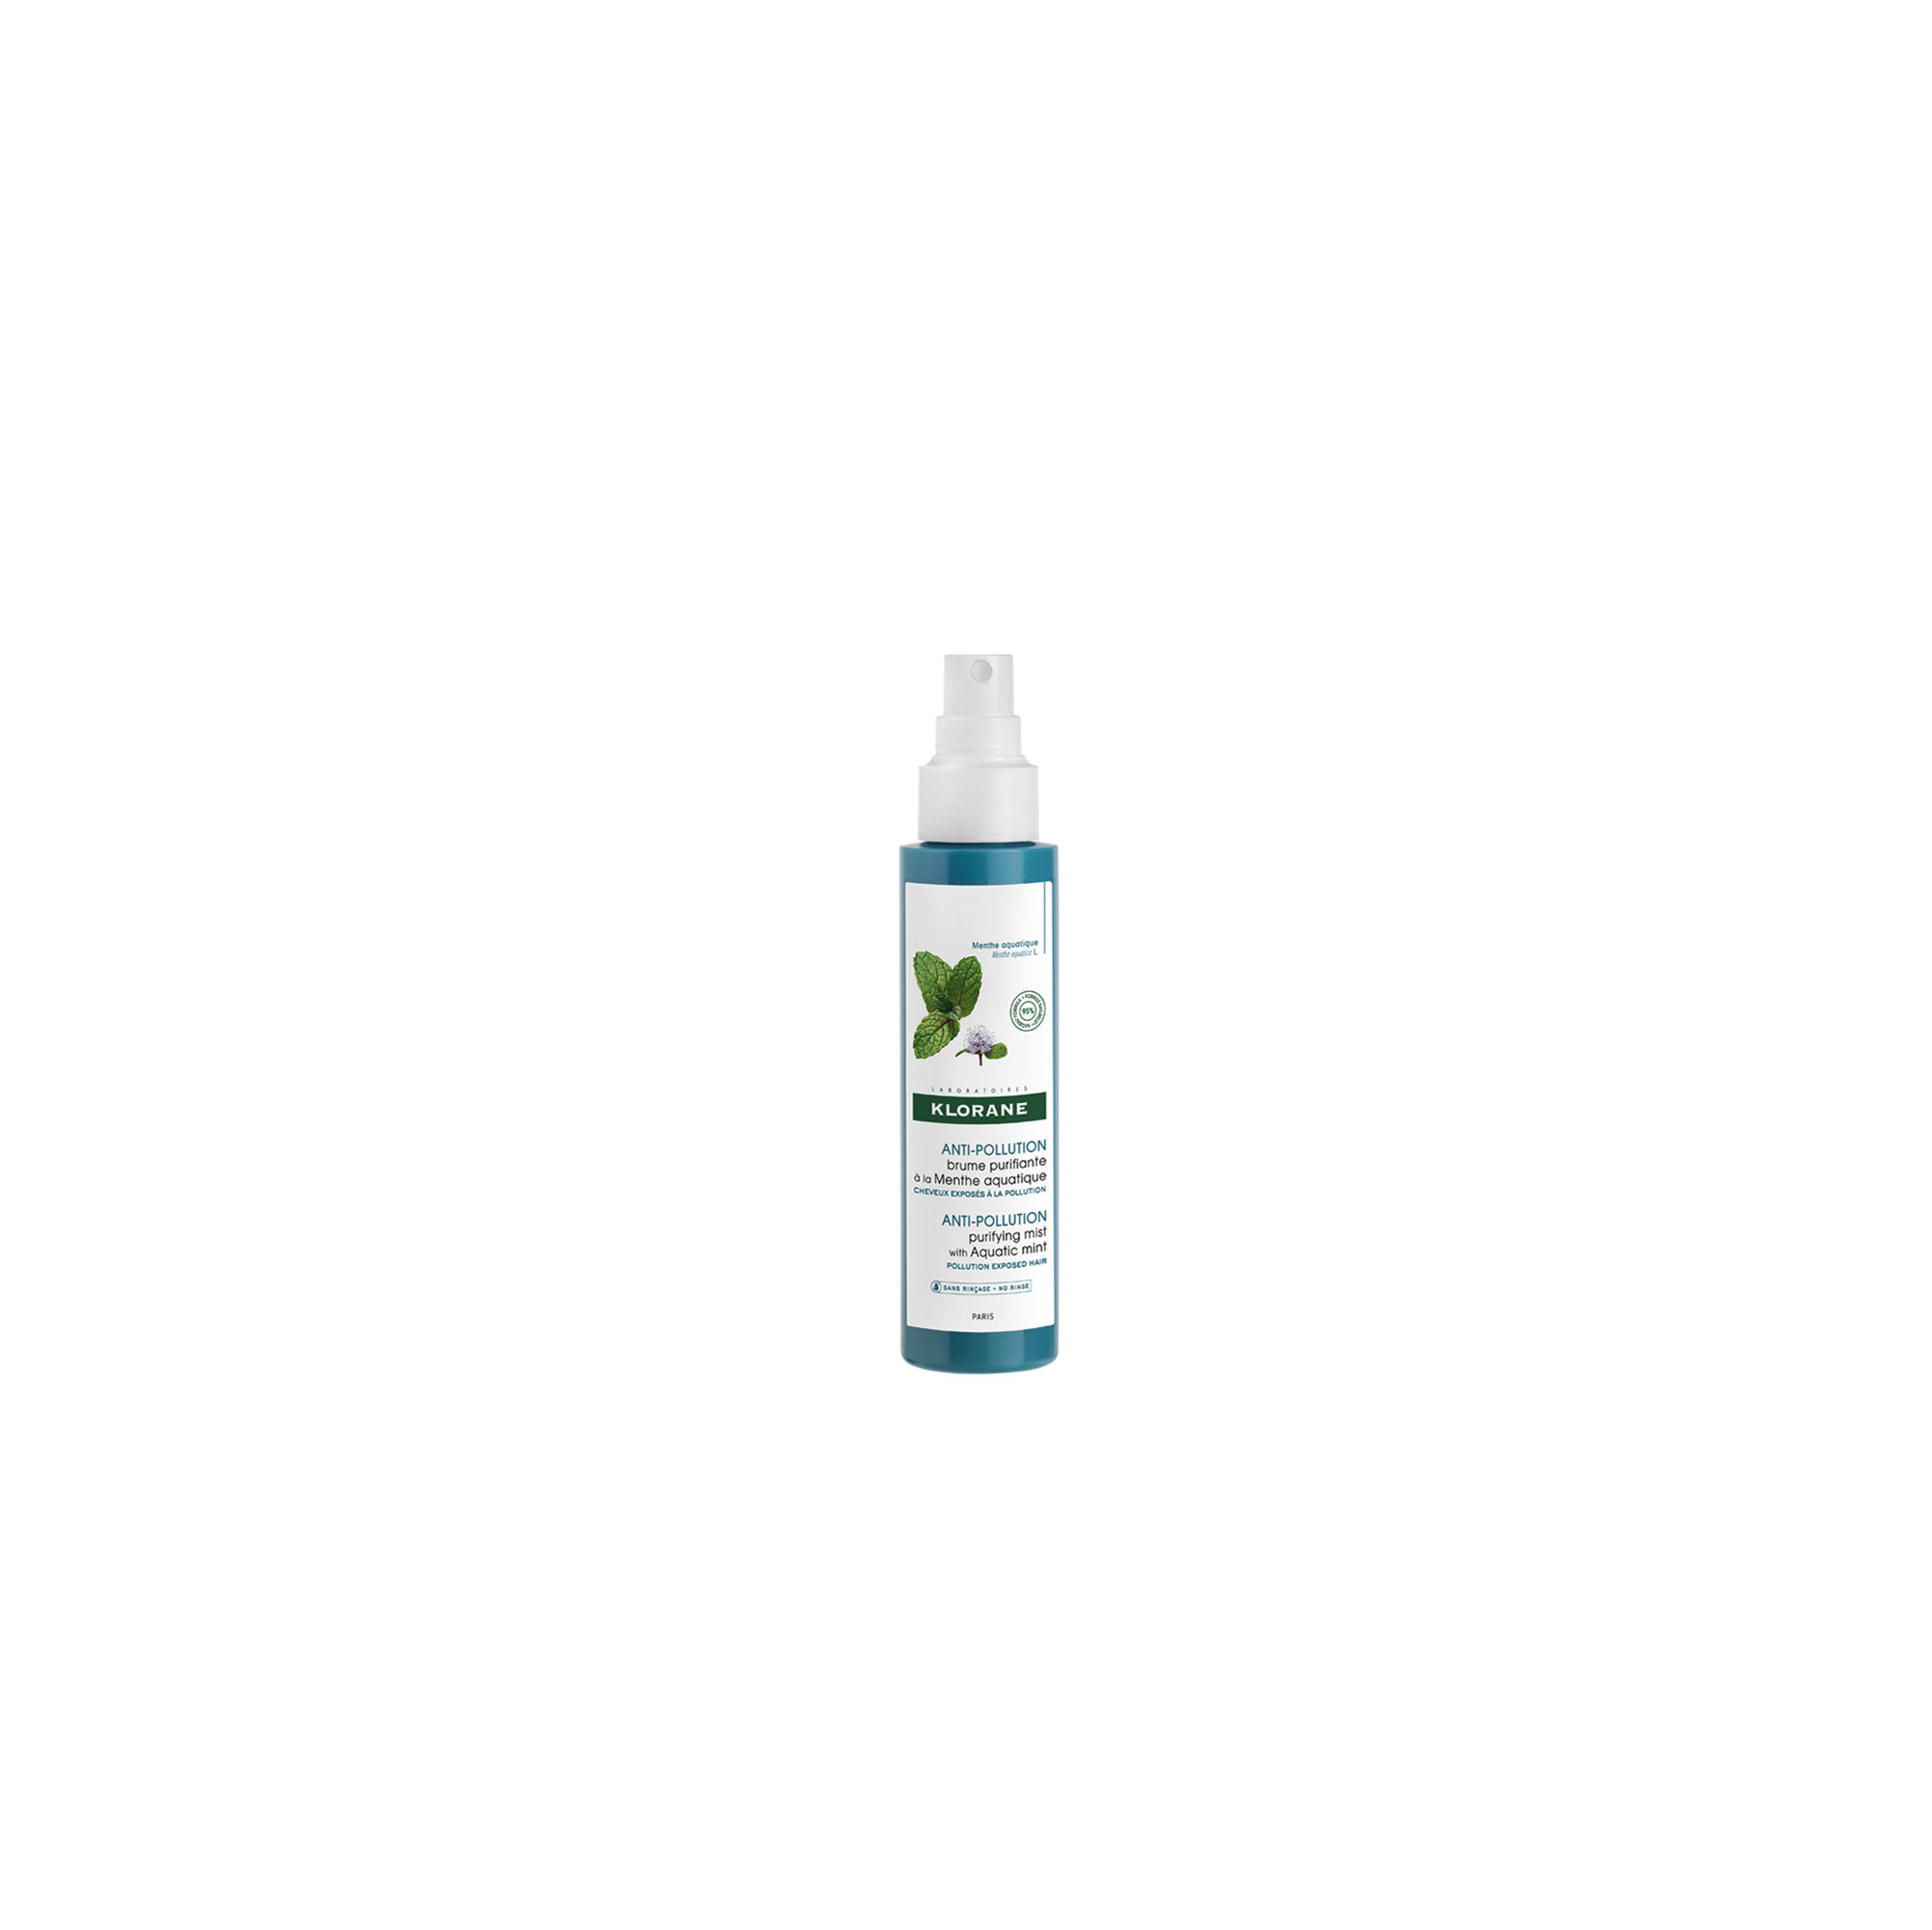 Purifying Mist with Aquatic Mint